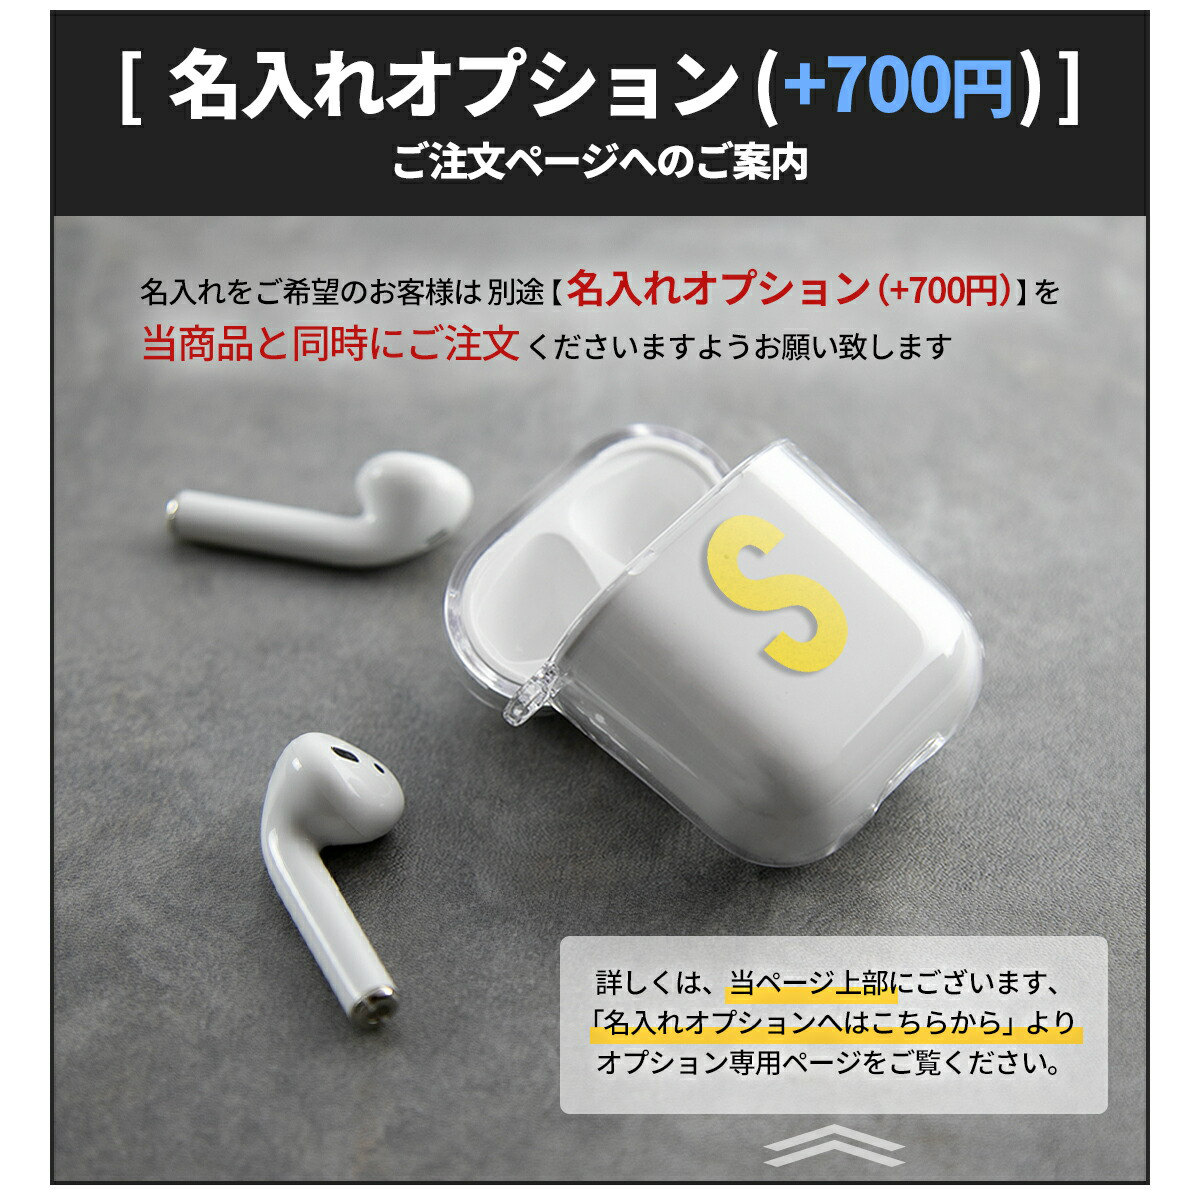 AirPods クリア ハードケース